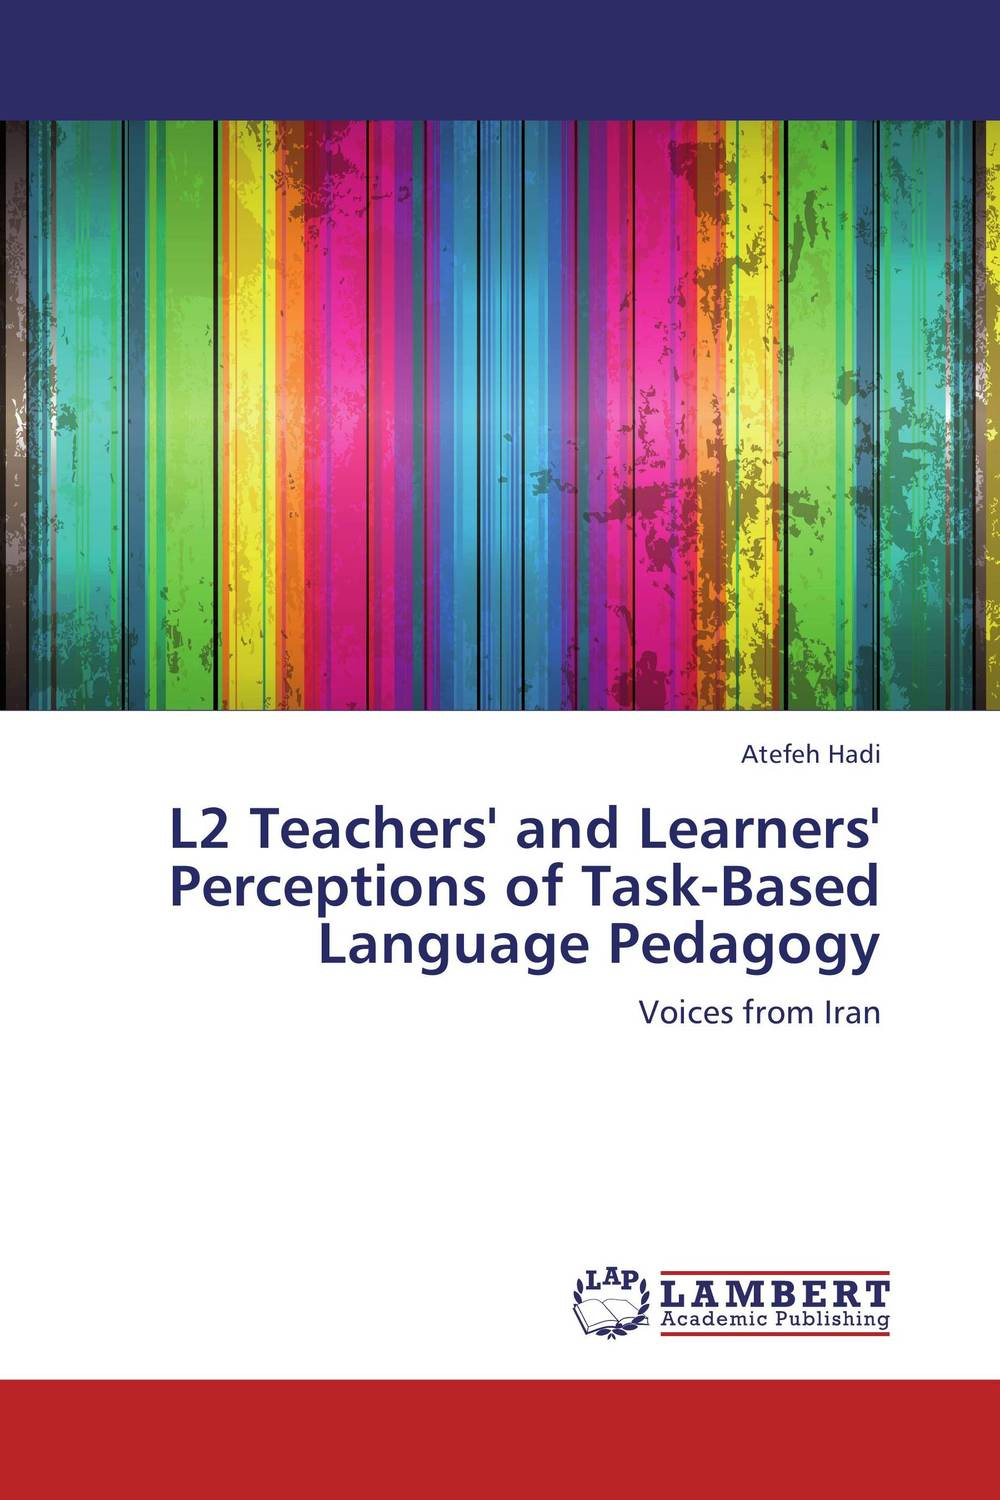 L2 Teachers' and Learners' Perceptions of Task-Based Language Pedagogy david willis doing task based teaching